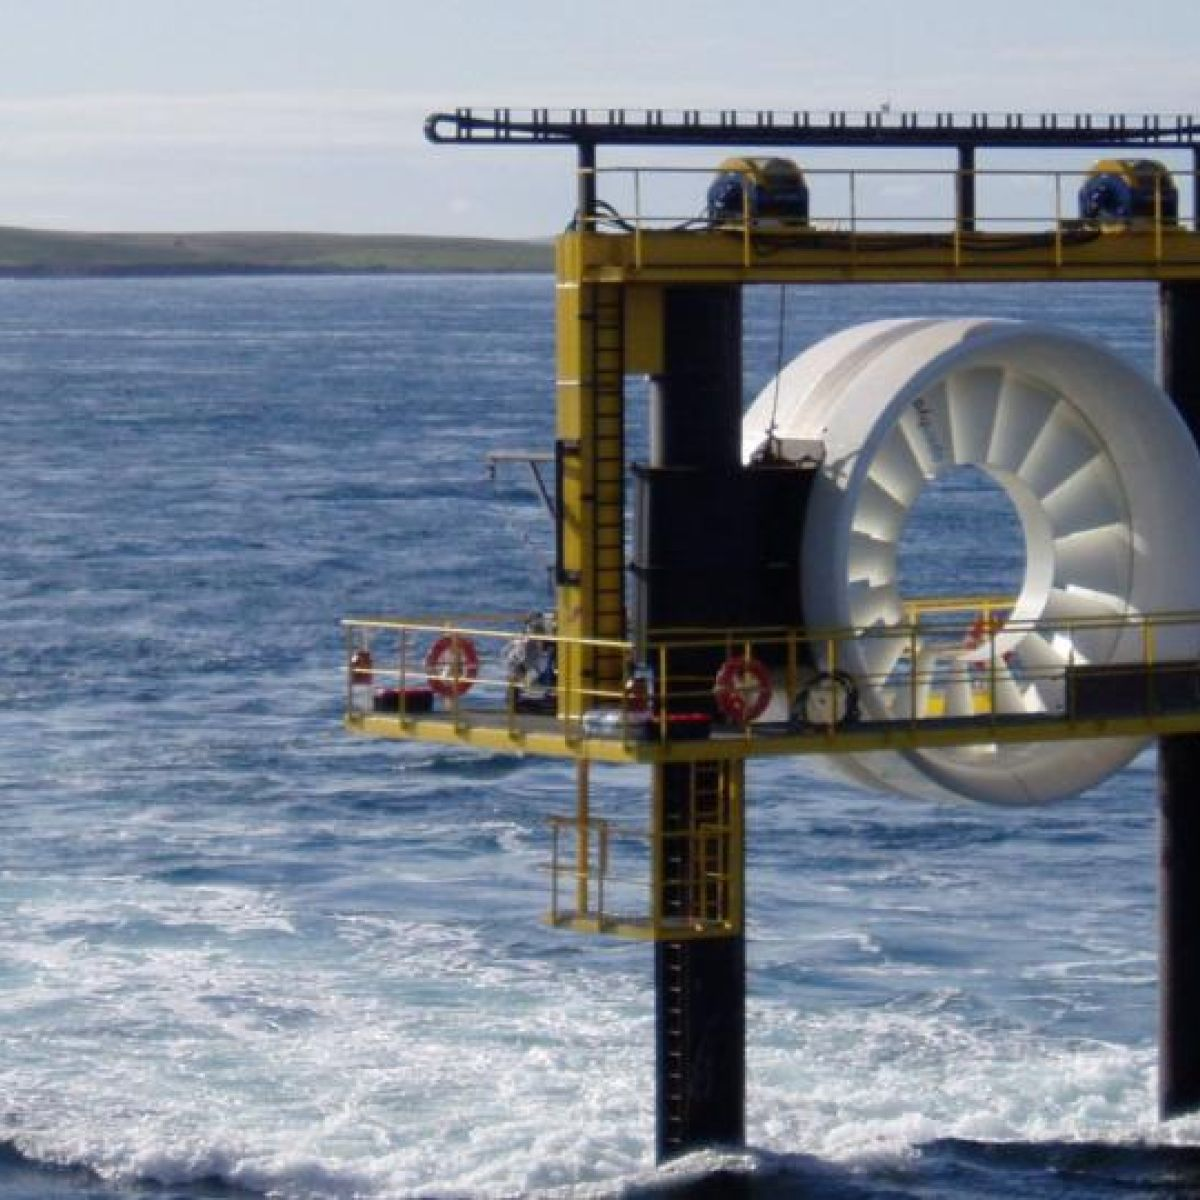 Openhydro to raise €55 million to spend on technology